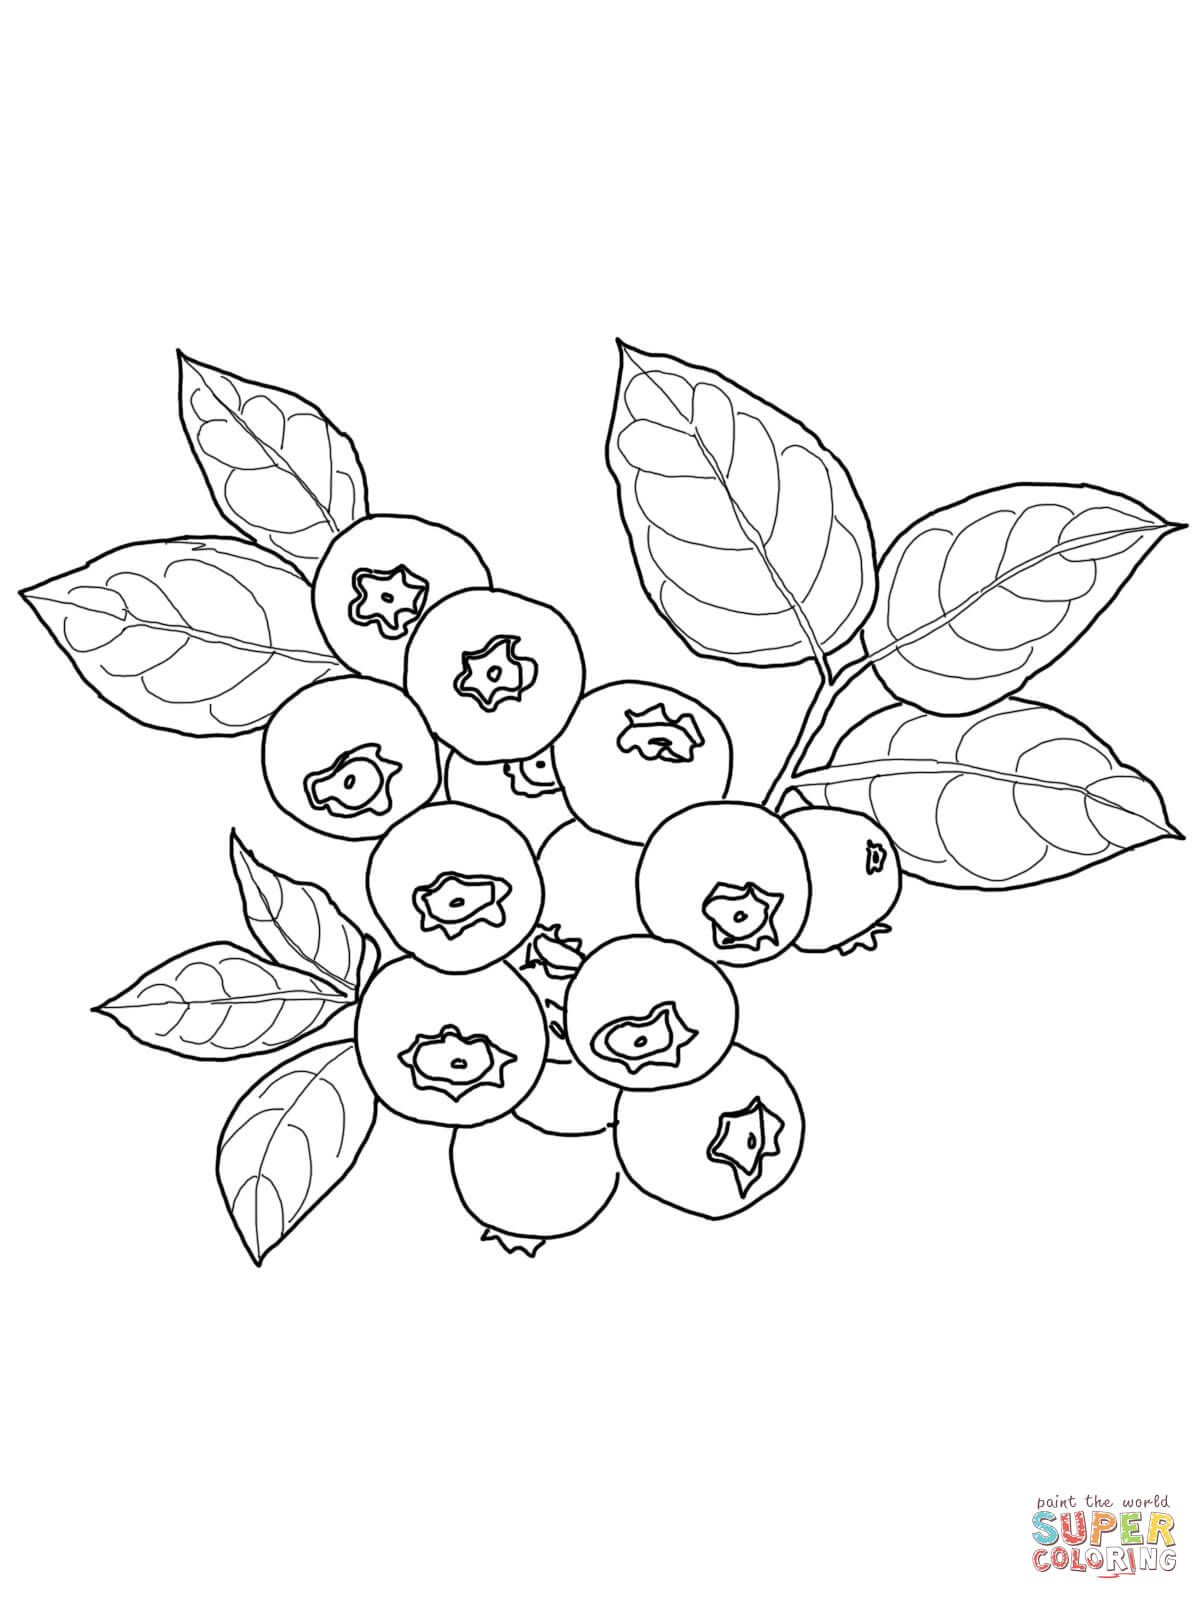 Blueberry Coloring Page From Blueberry Category Select From 26977